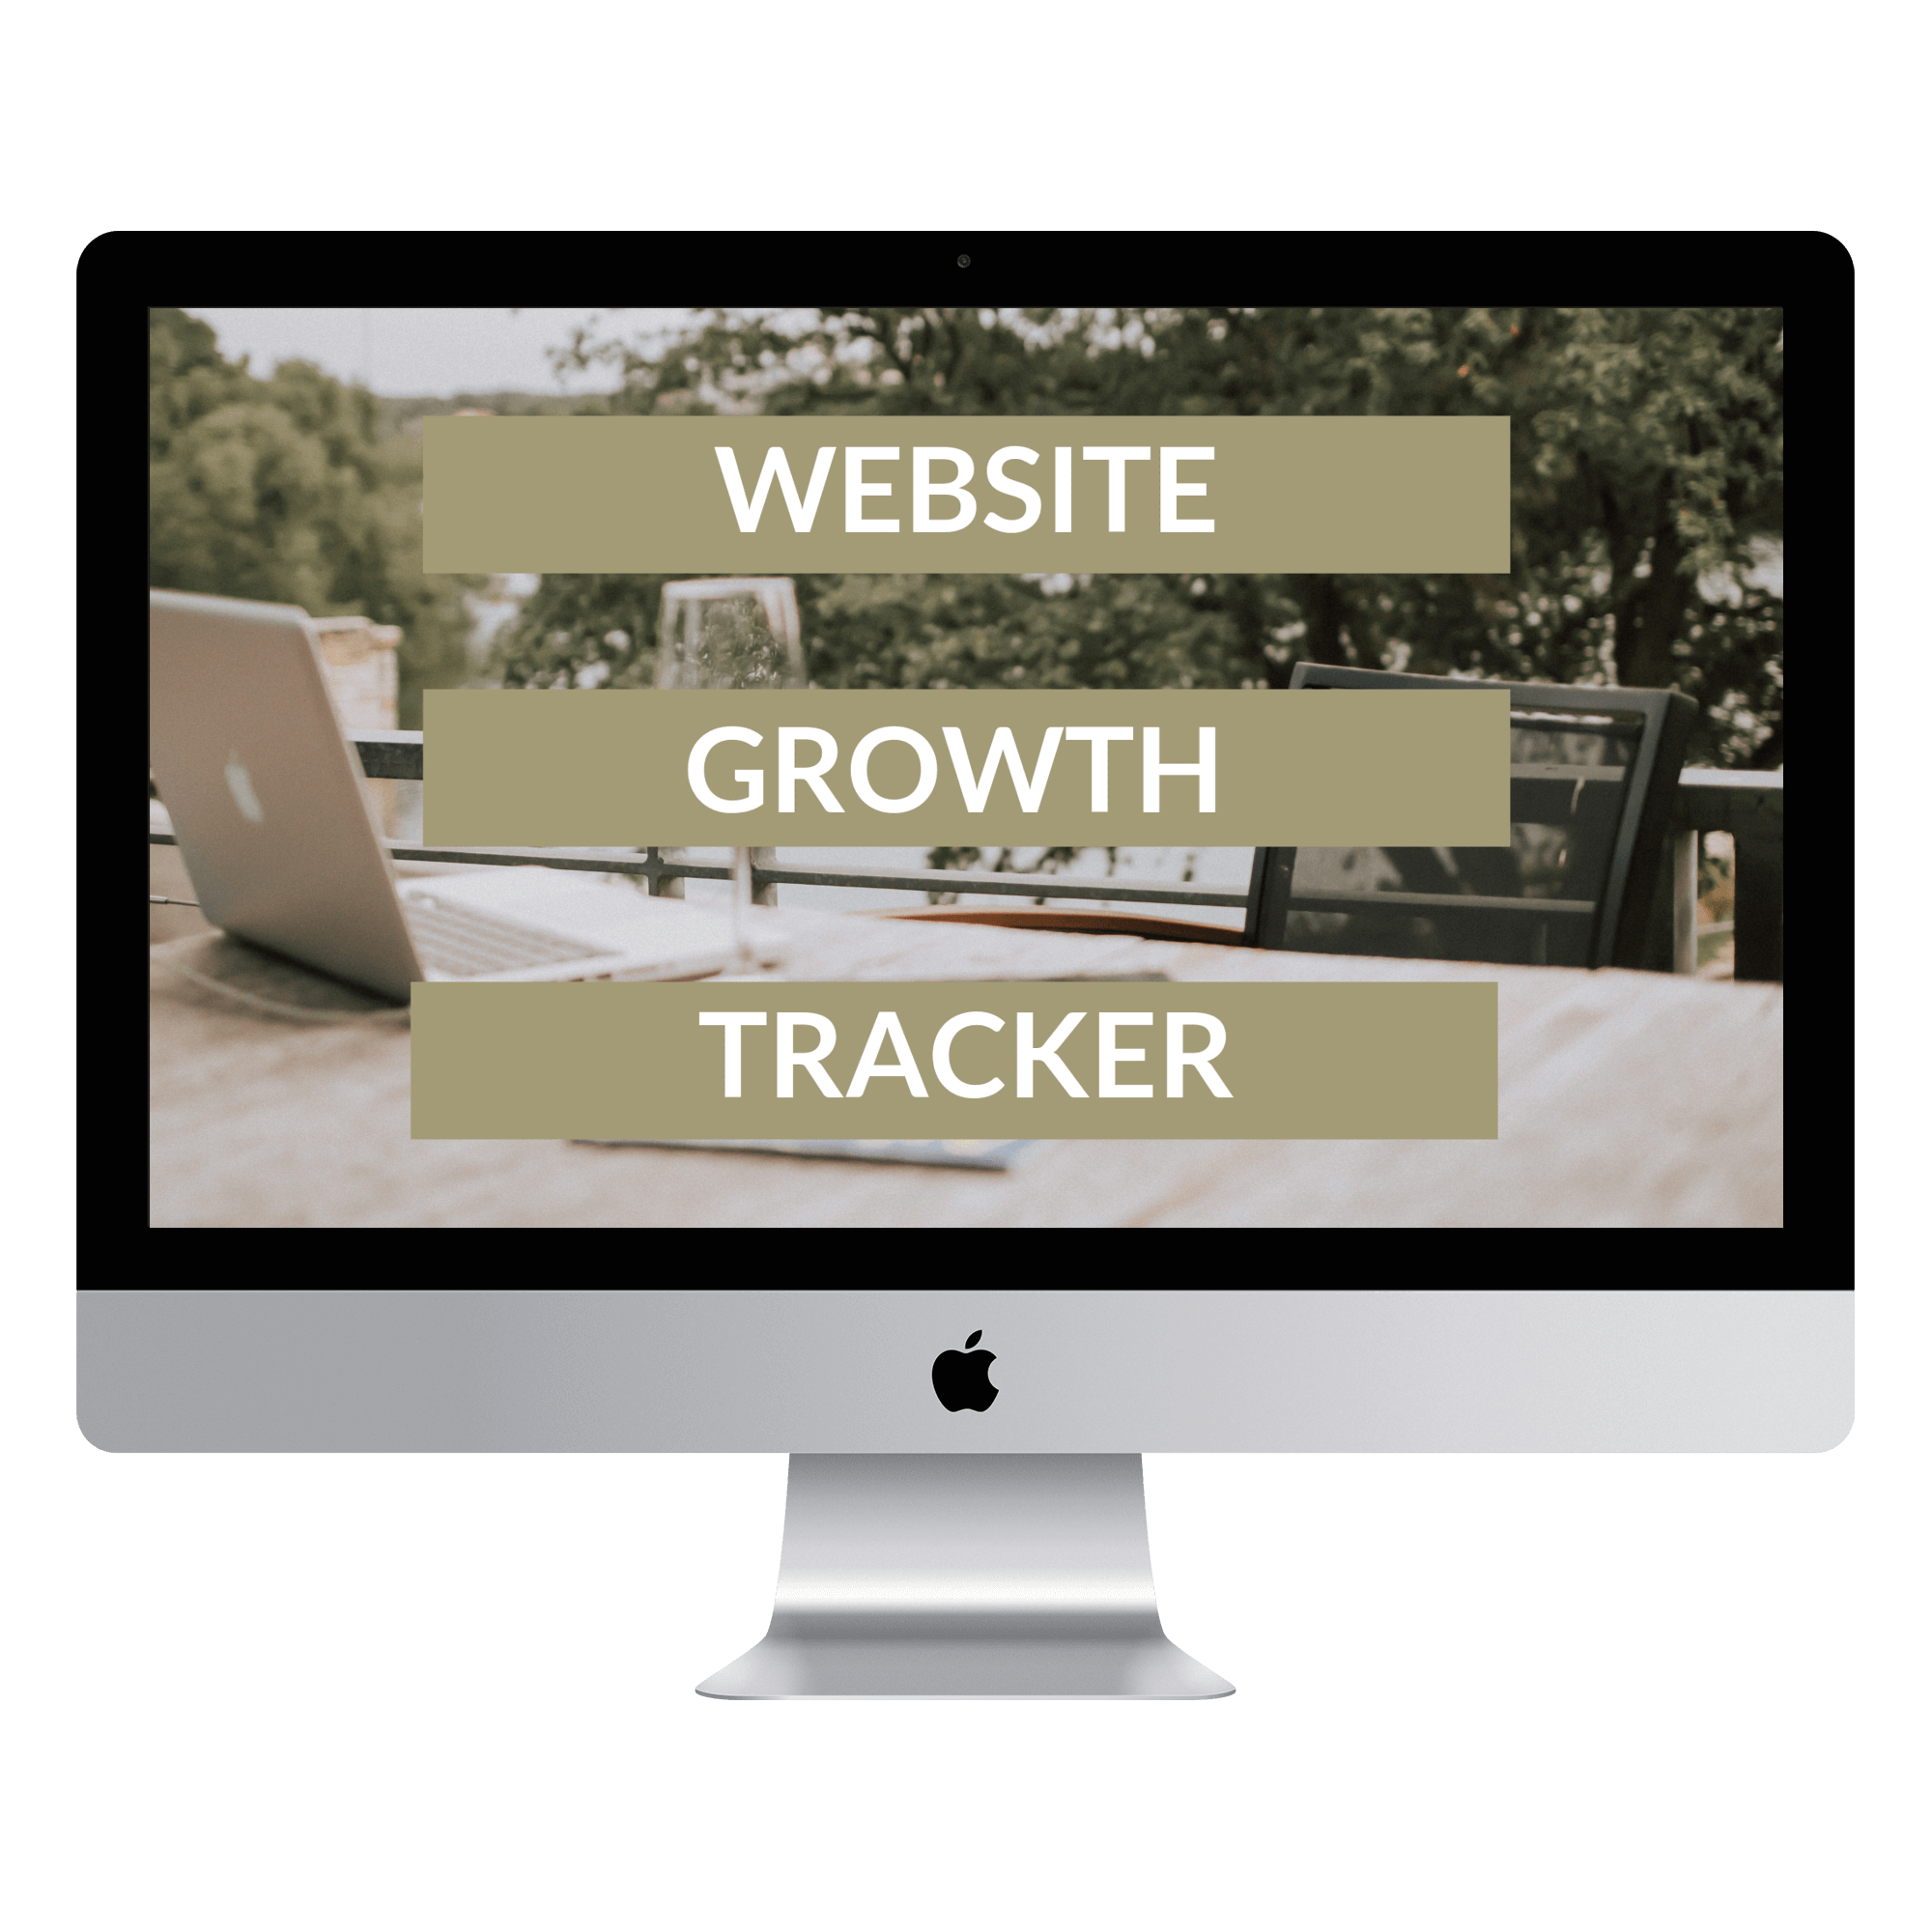 website growth tracker mockup - 2019 (1).png